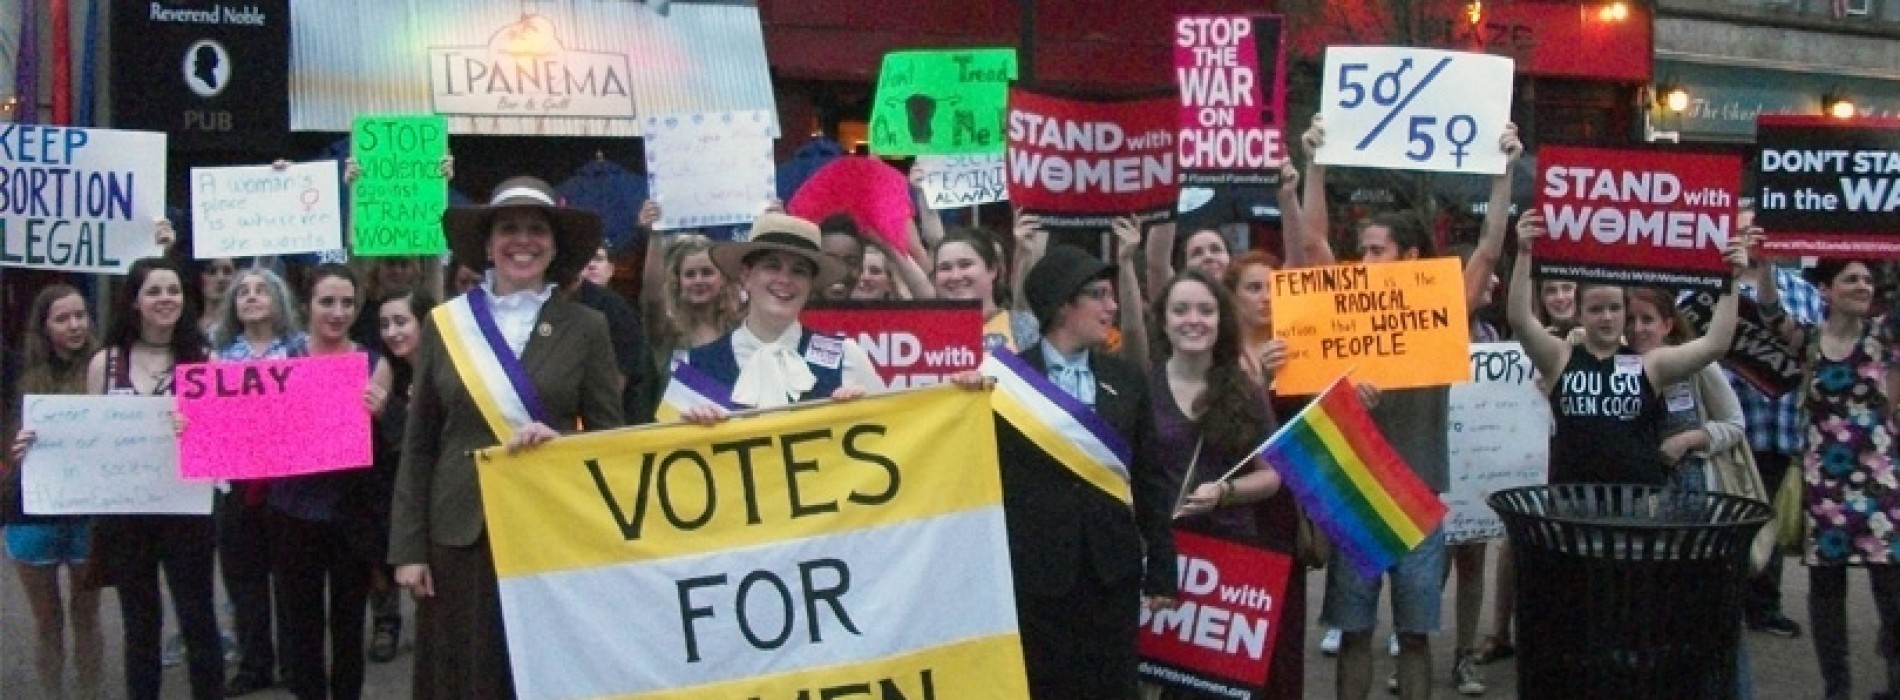 Women march for equality in Bangor